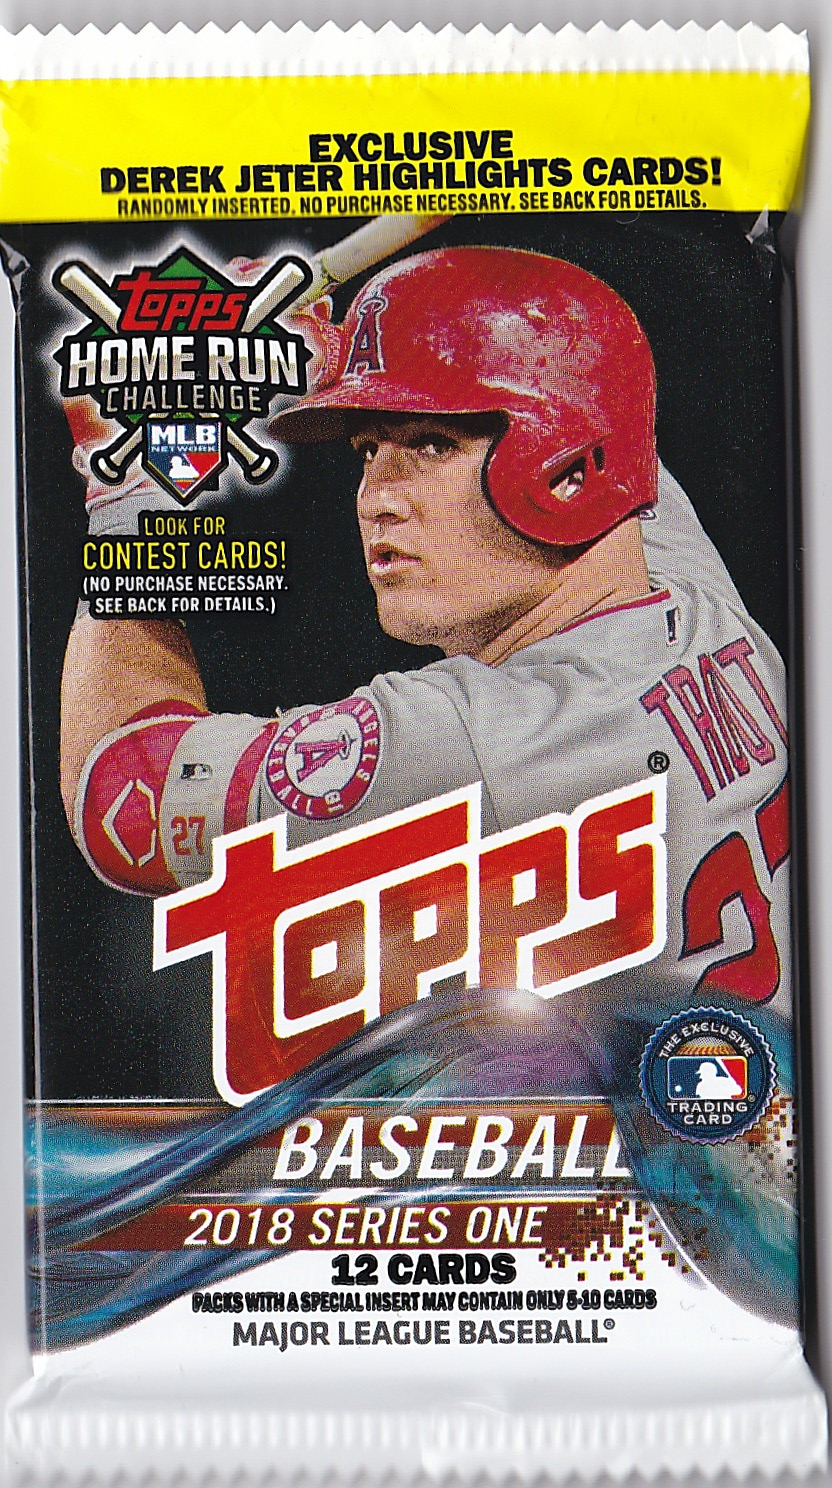 Bdj610s Topps Baseball Card Blog So Which 2018 Topps